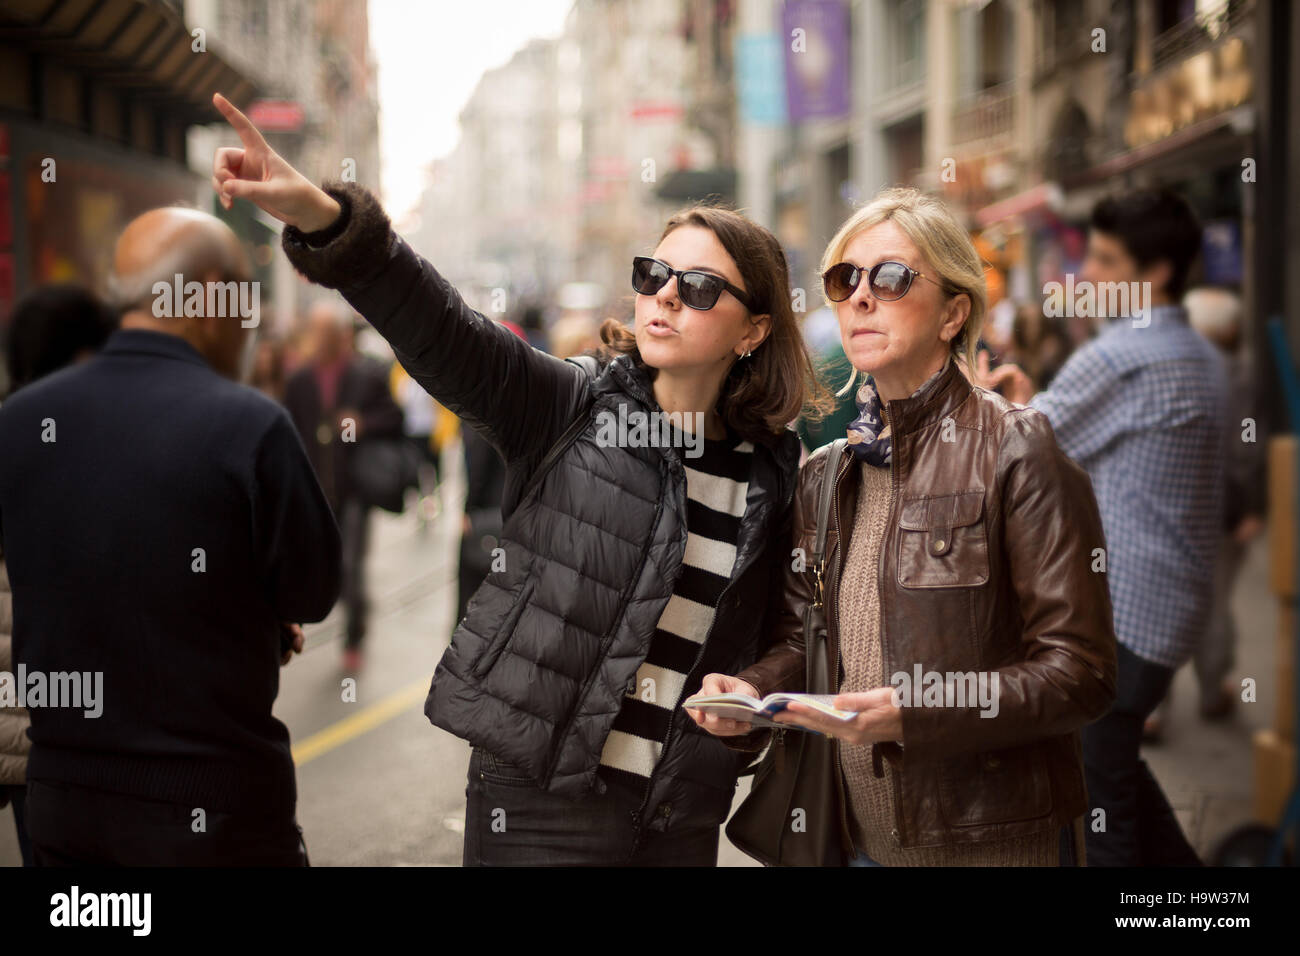 Mother and daughter are on the street and looking for a place to visit ,they are using a travel guide to explore - Stock Image